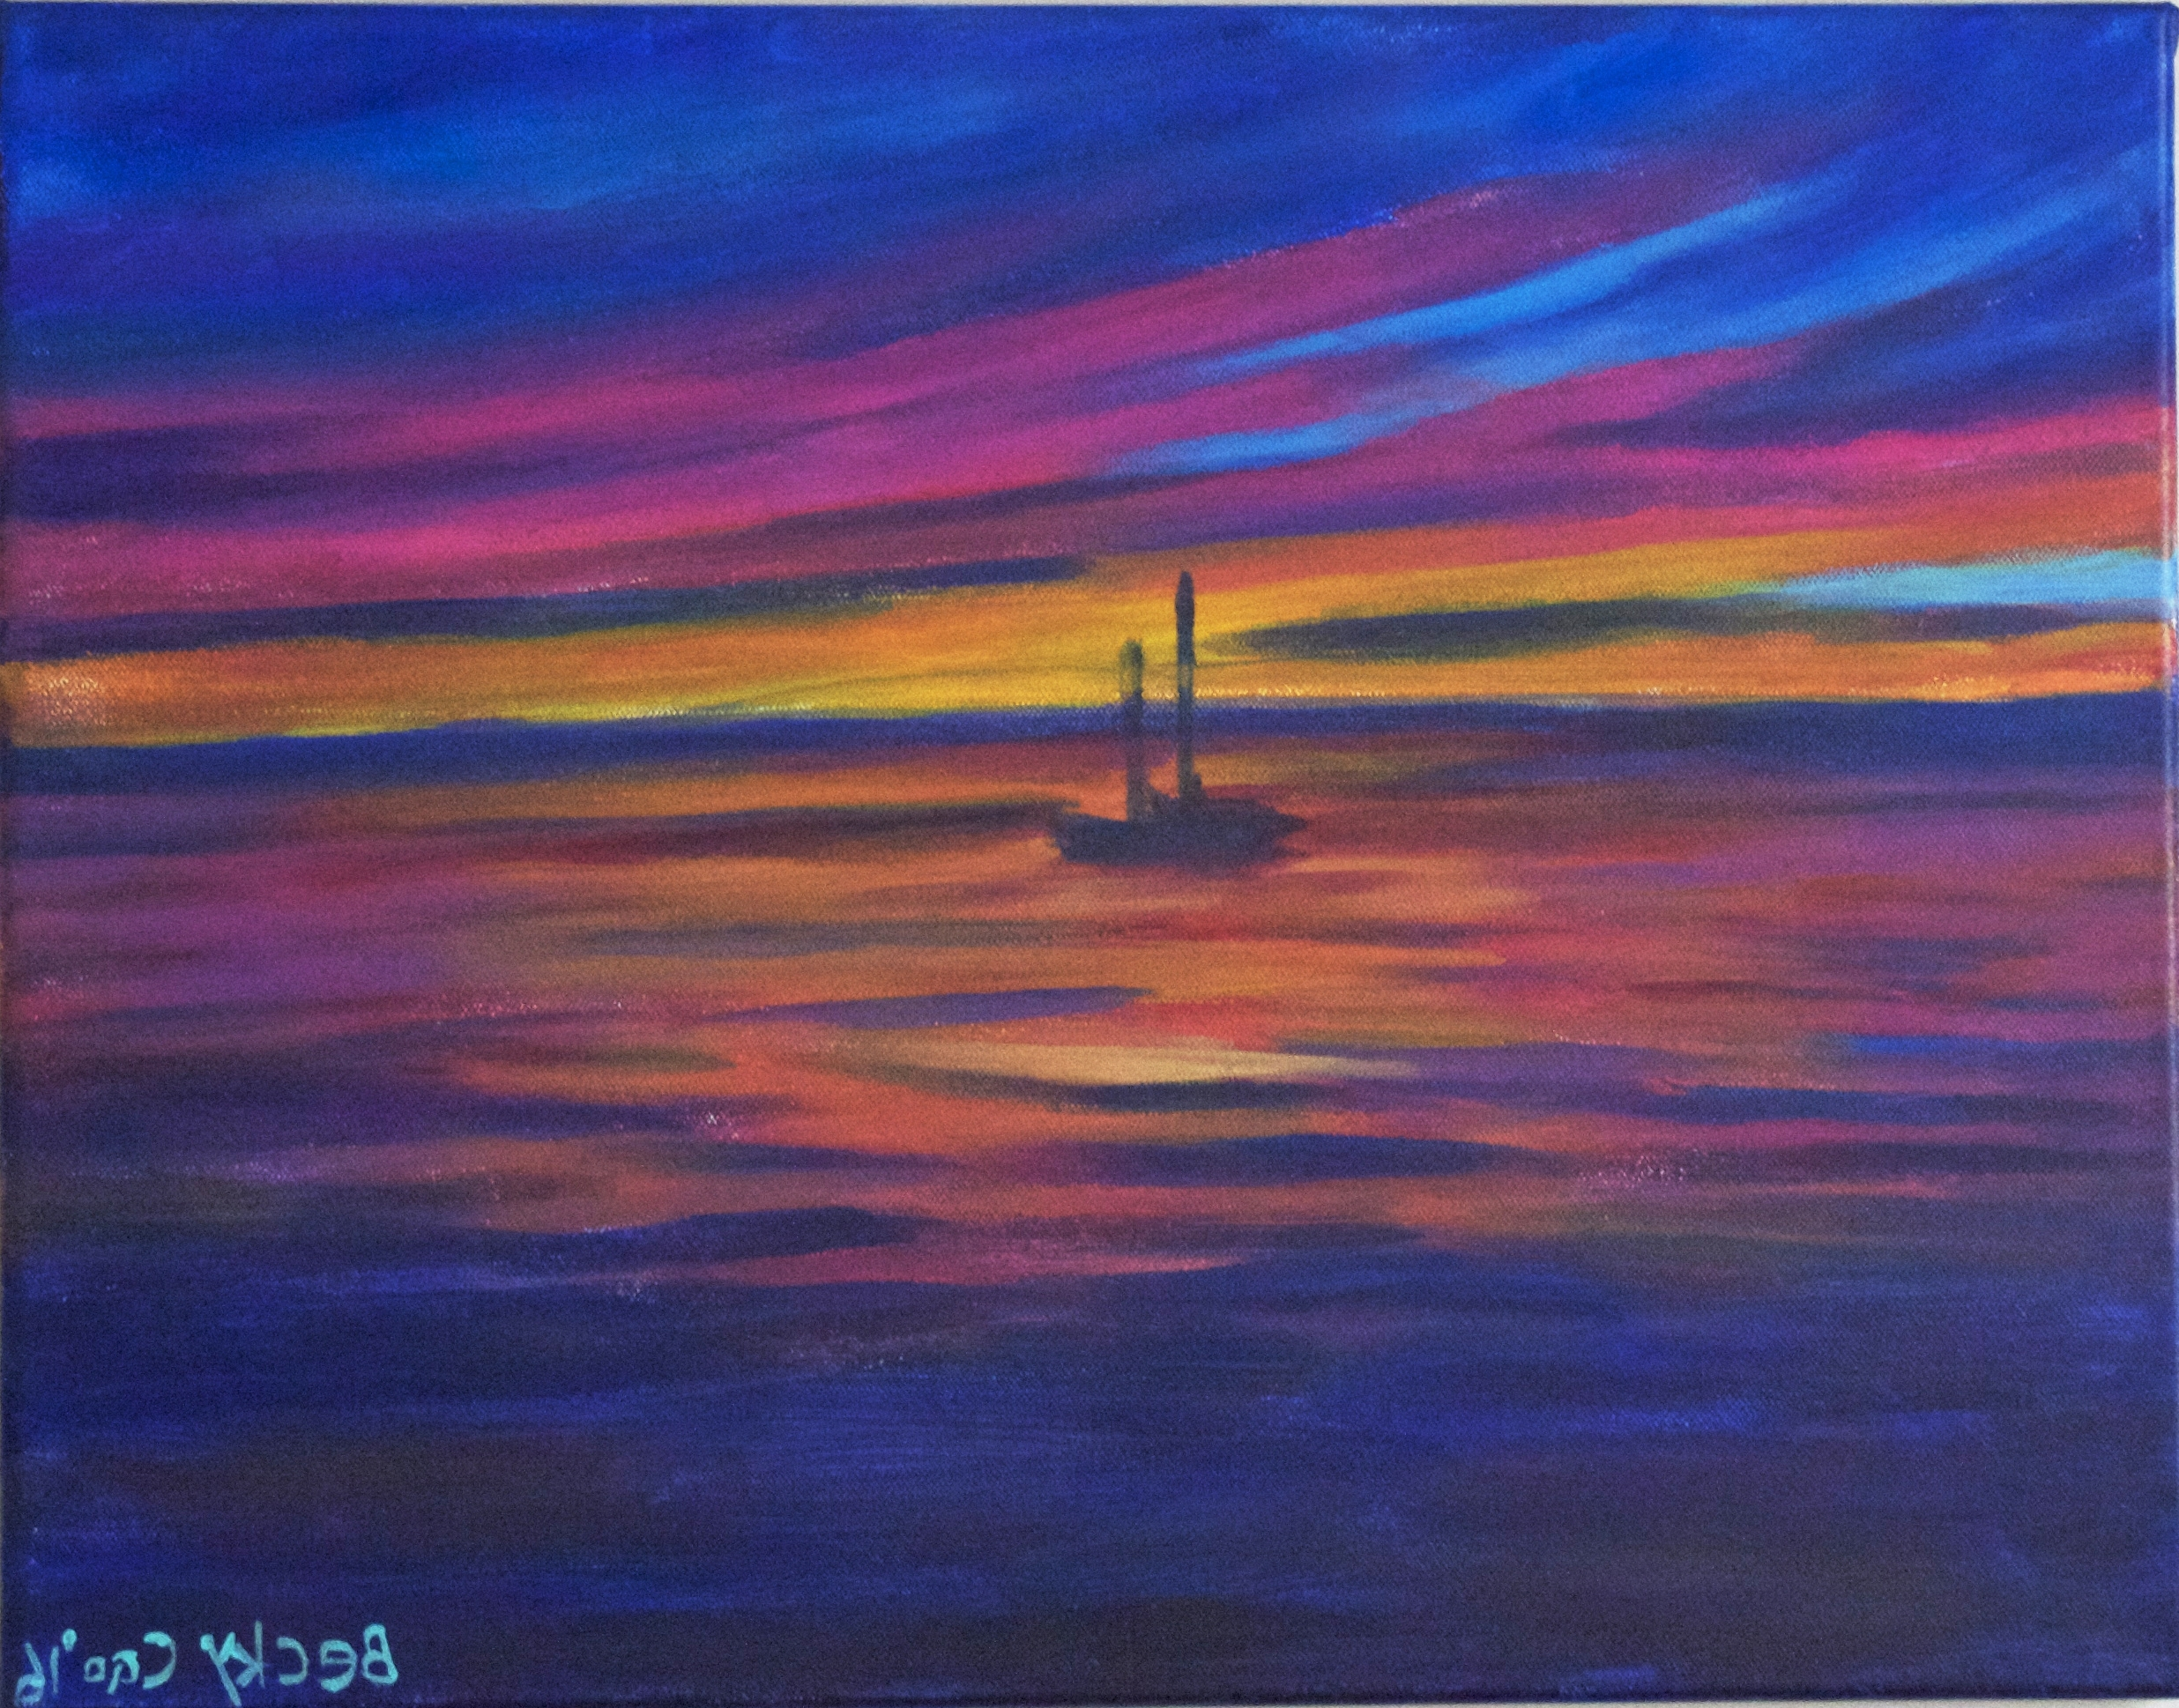 """Abstract Horizon Wall Art Within Most Up To Date Blue Red Sail Boat Painting Ocean Wall Décor 16""""20"""" Acrylic (View 13 of 15)"""